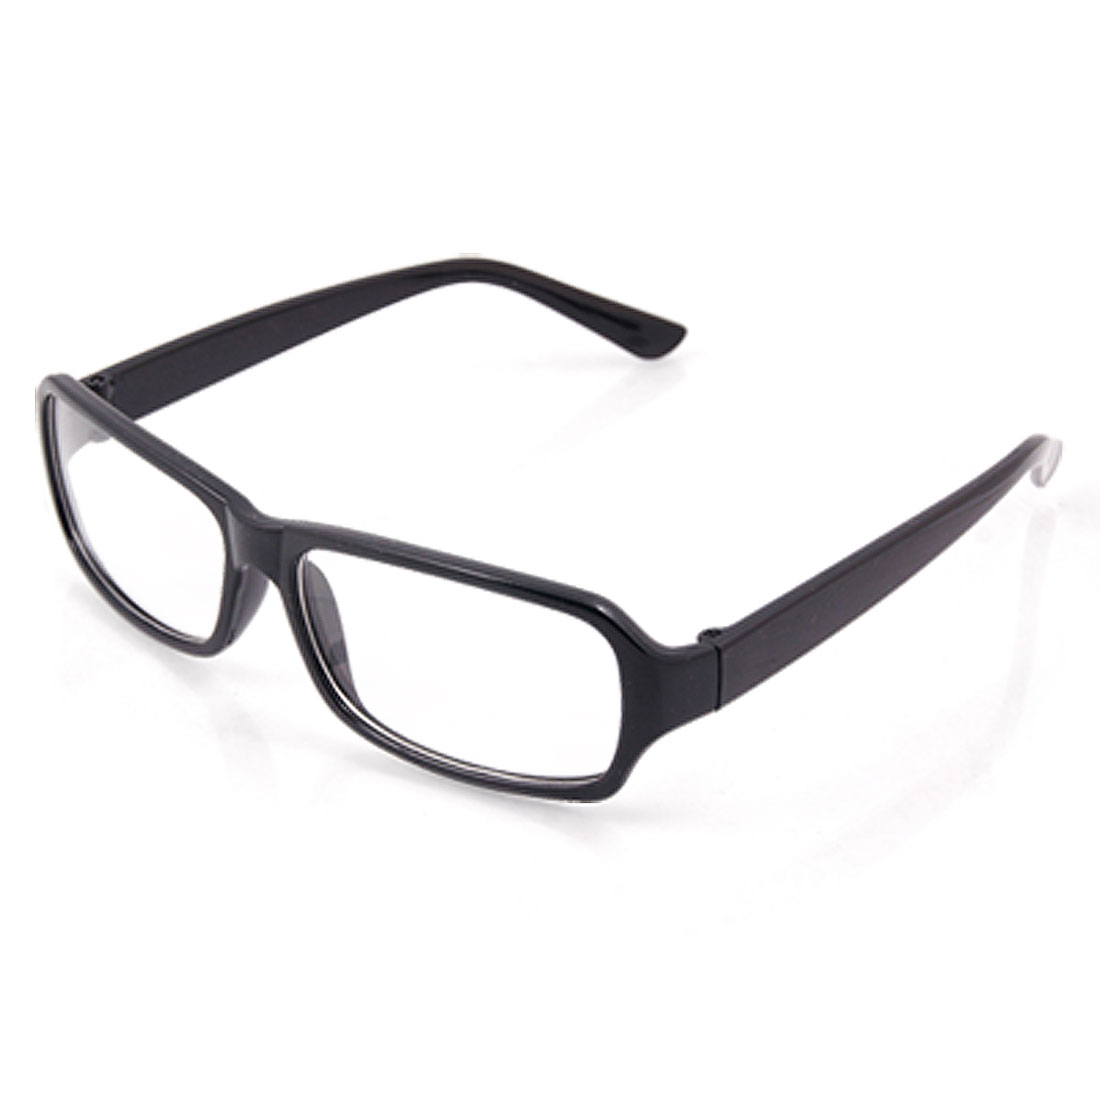 Blk Polished Plastic Arms Rectangle Clear Lens Spectacles